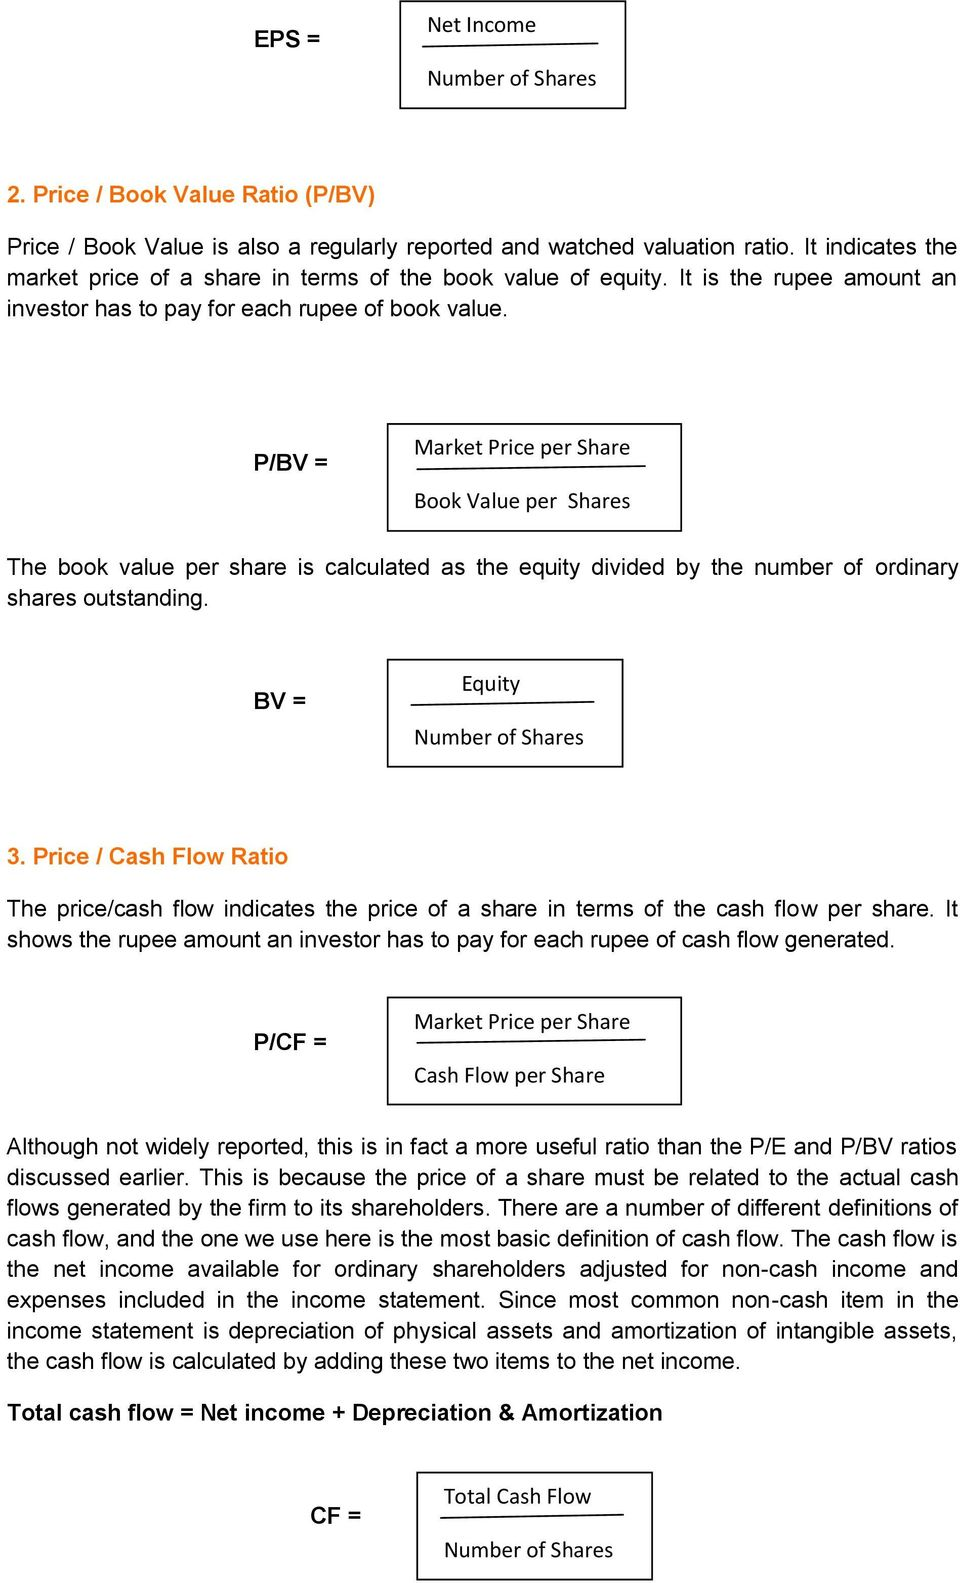 P/BV = Market Price per Share Book Value per Shares The book value per share is calculated as the equity divided by the number of ordinary shares outstanding. BV = Equity Number of Shares 3.